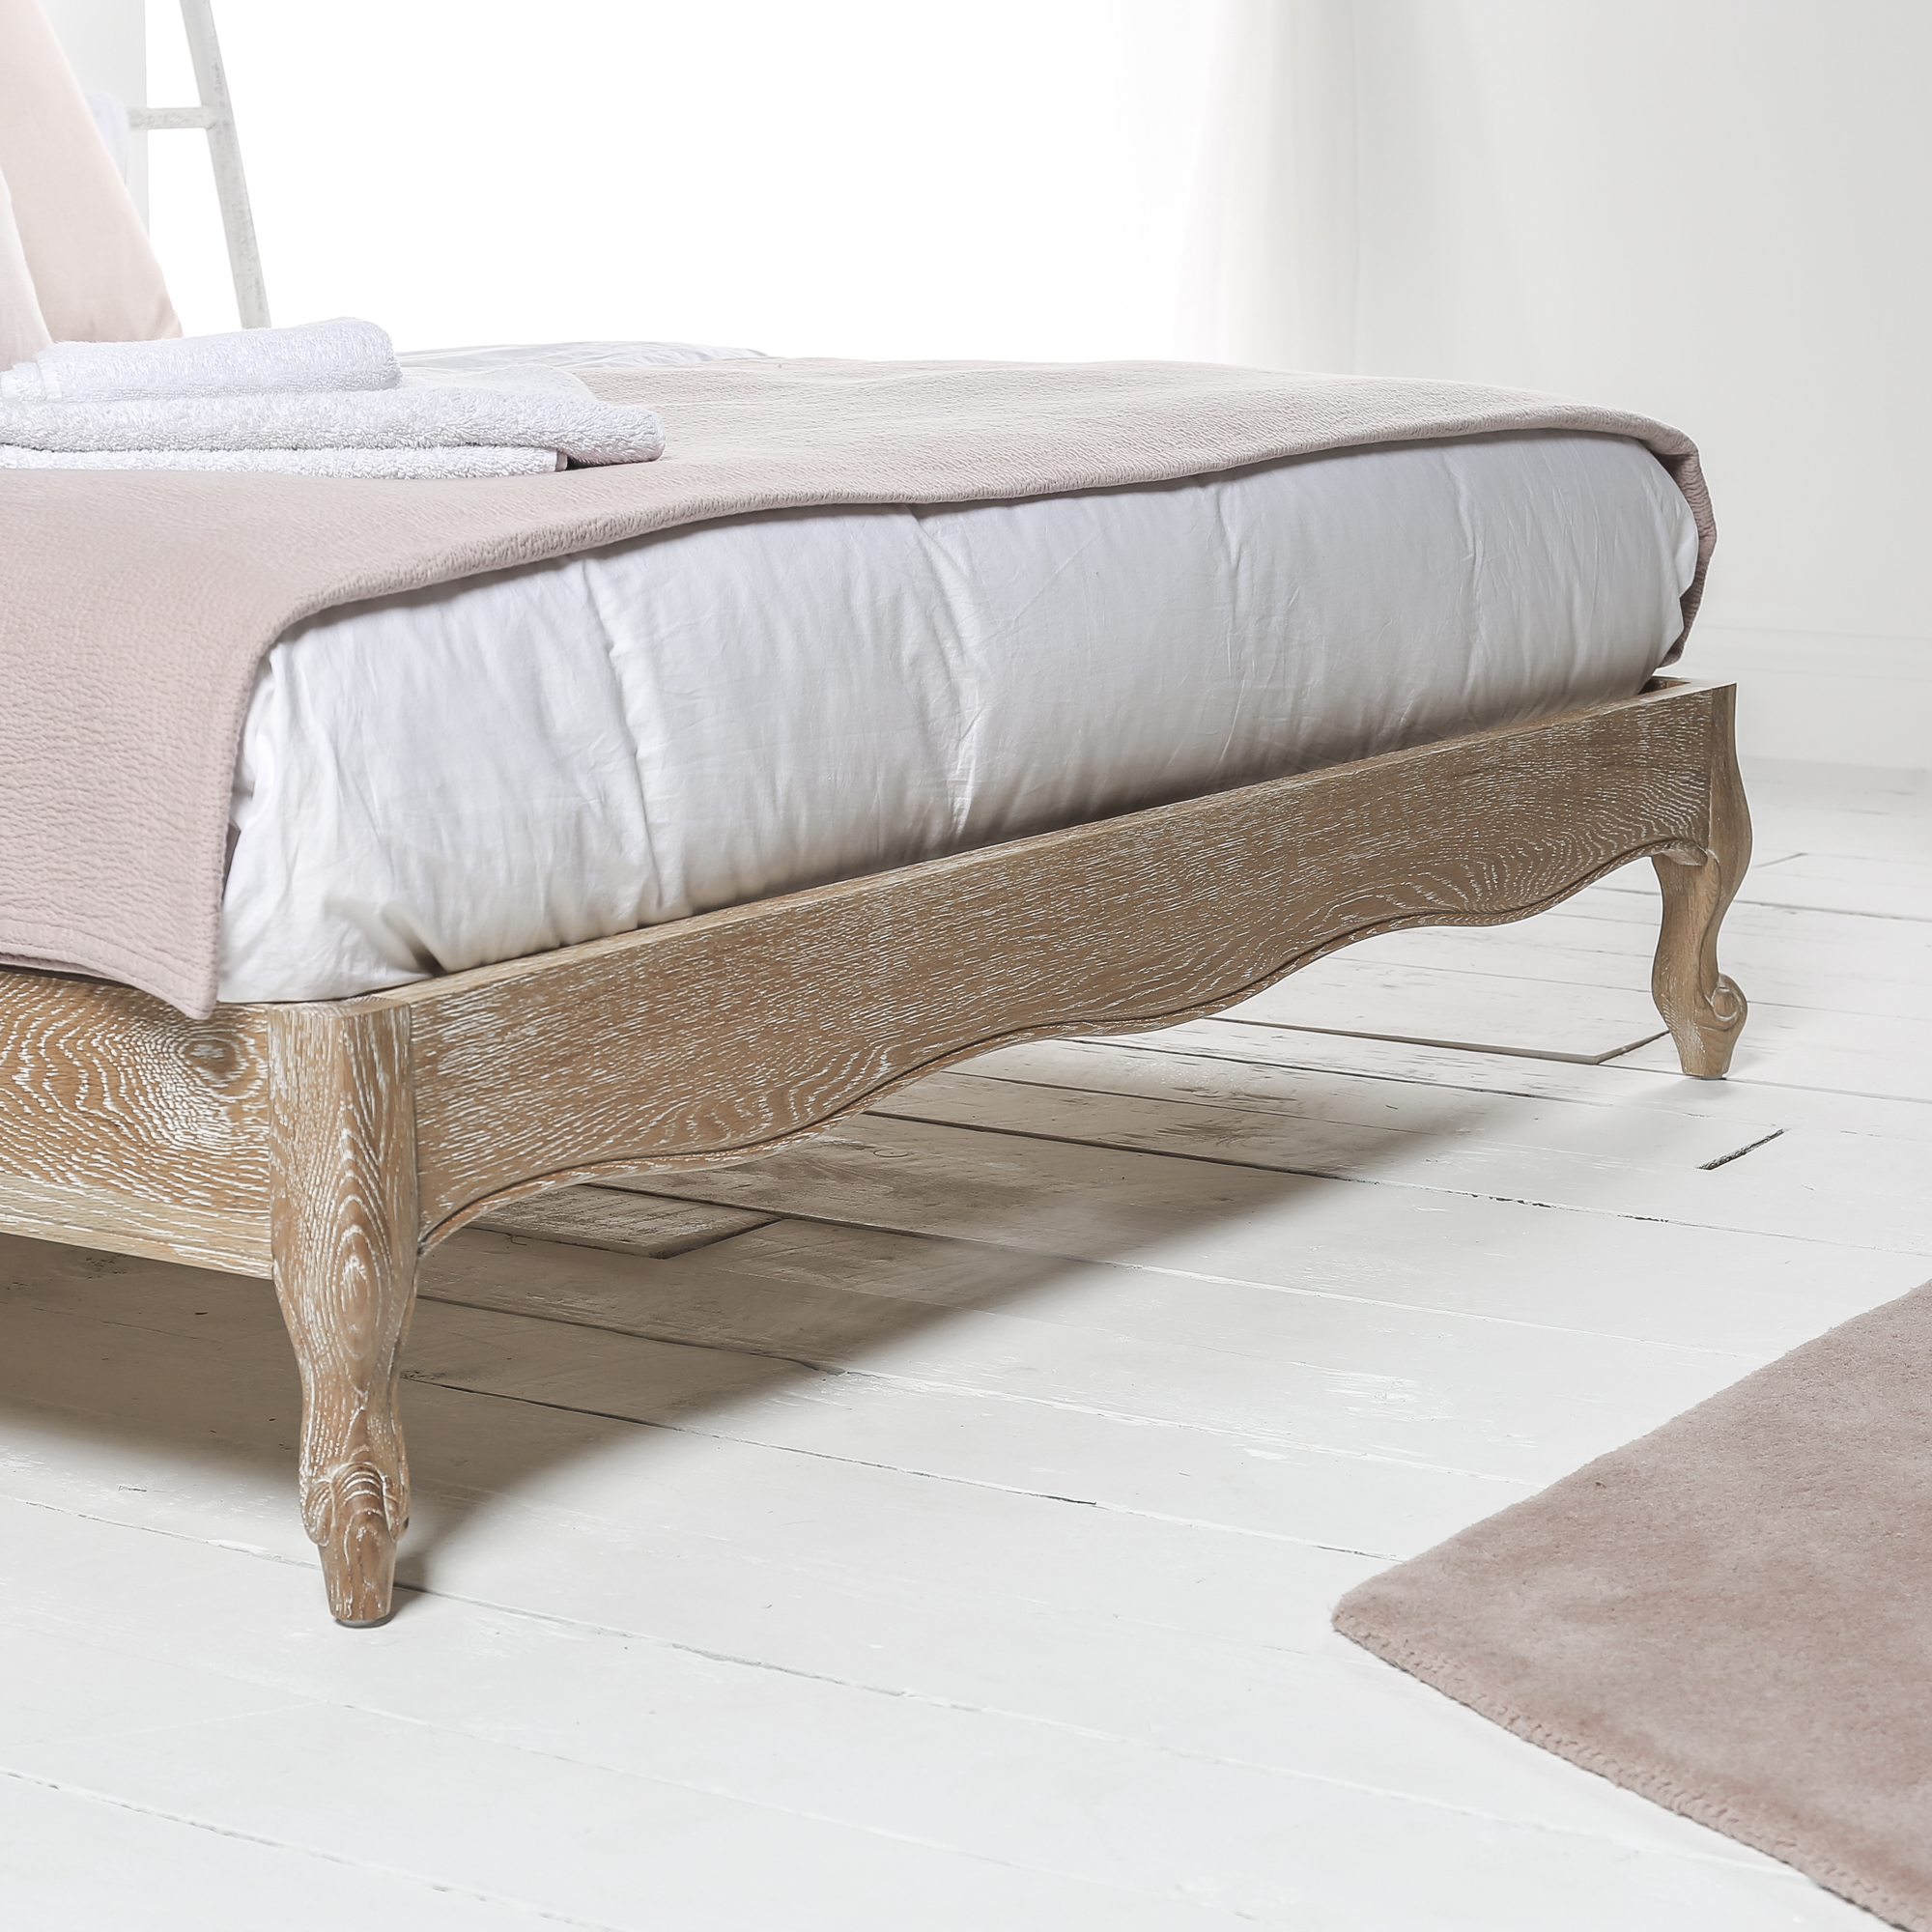 French Weathered Limed Oak Upholstered Curved Low Foot Board Bed – King Size